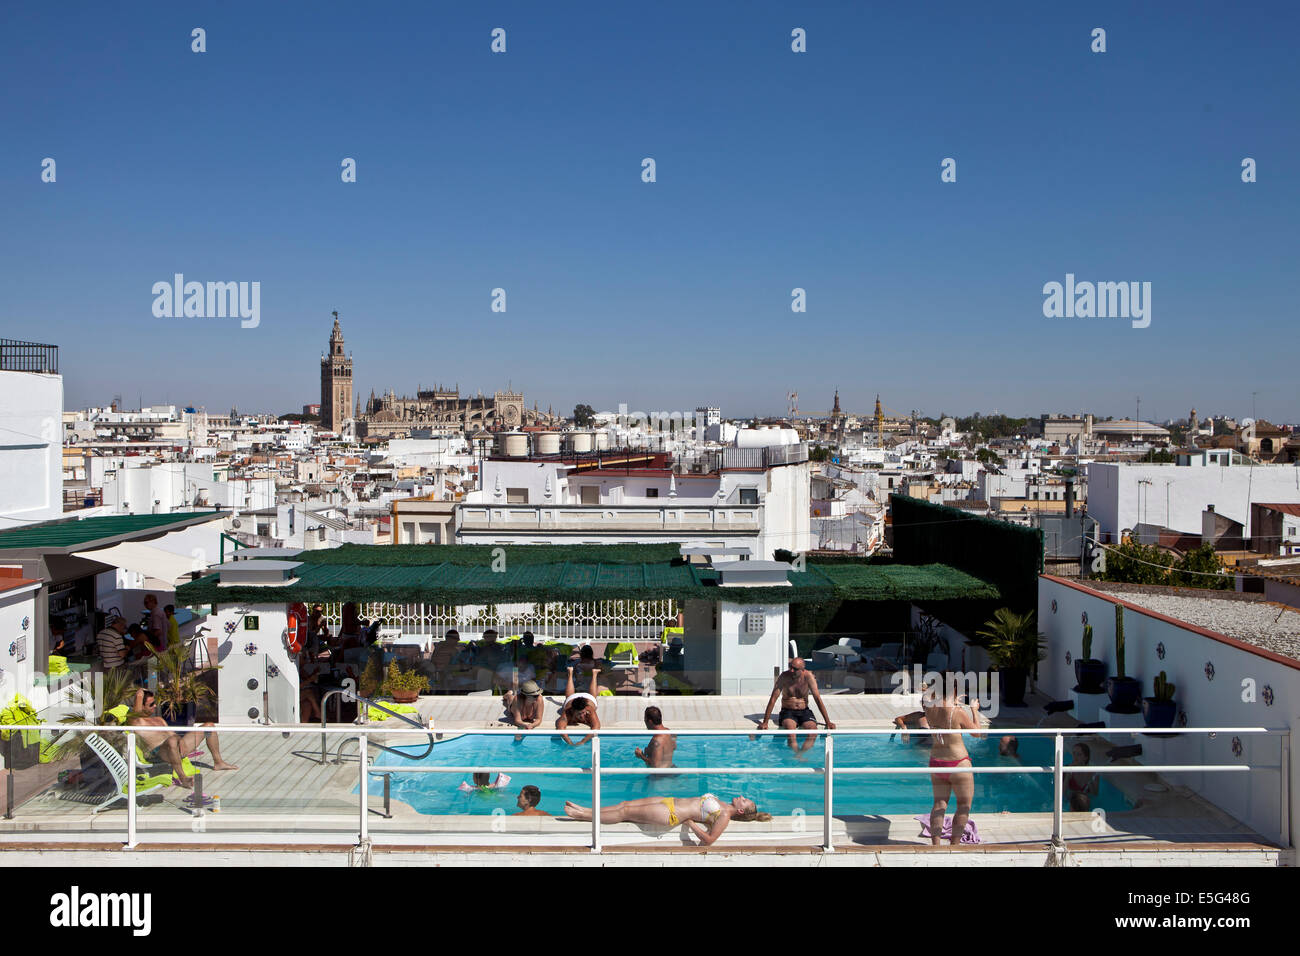 Hotel Rooftop Swimming Pool Overlooking Seville Spain Stock Photo Royalty Free Image 72269360